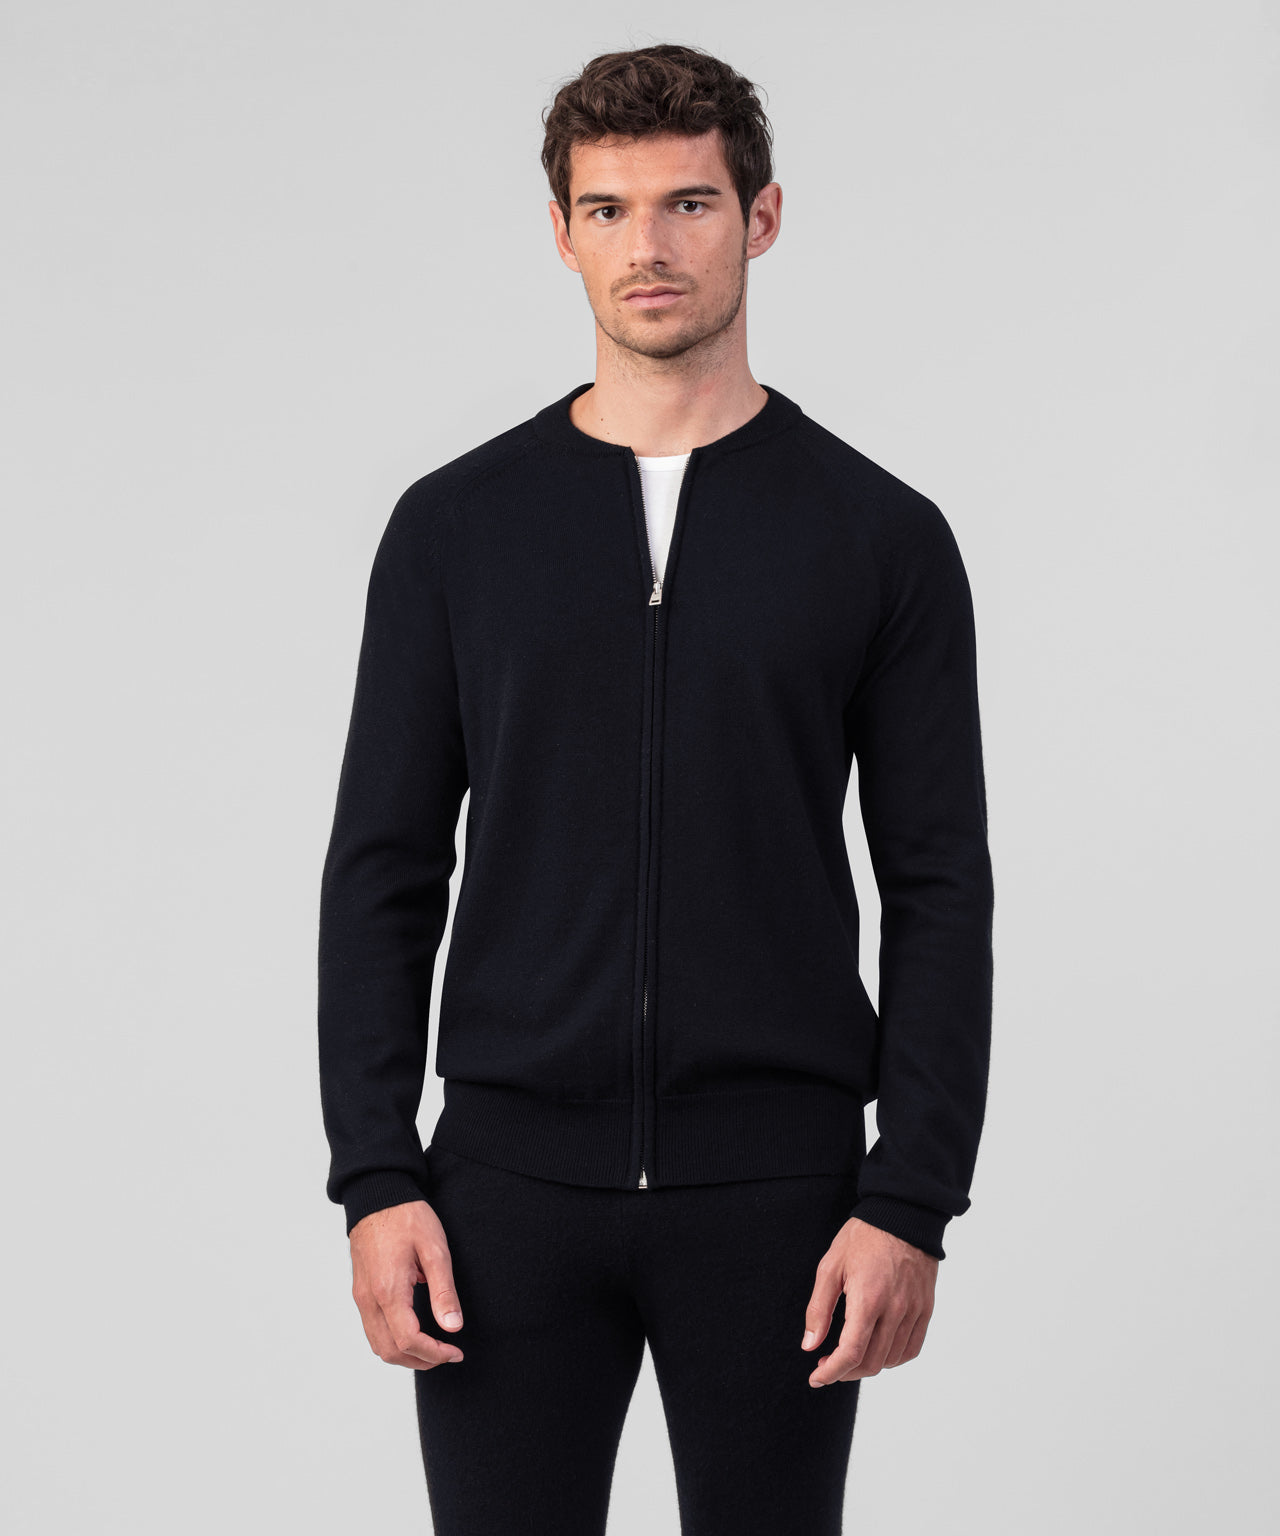 Merino Wool Zipped Sweater - black